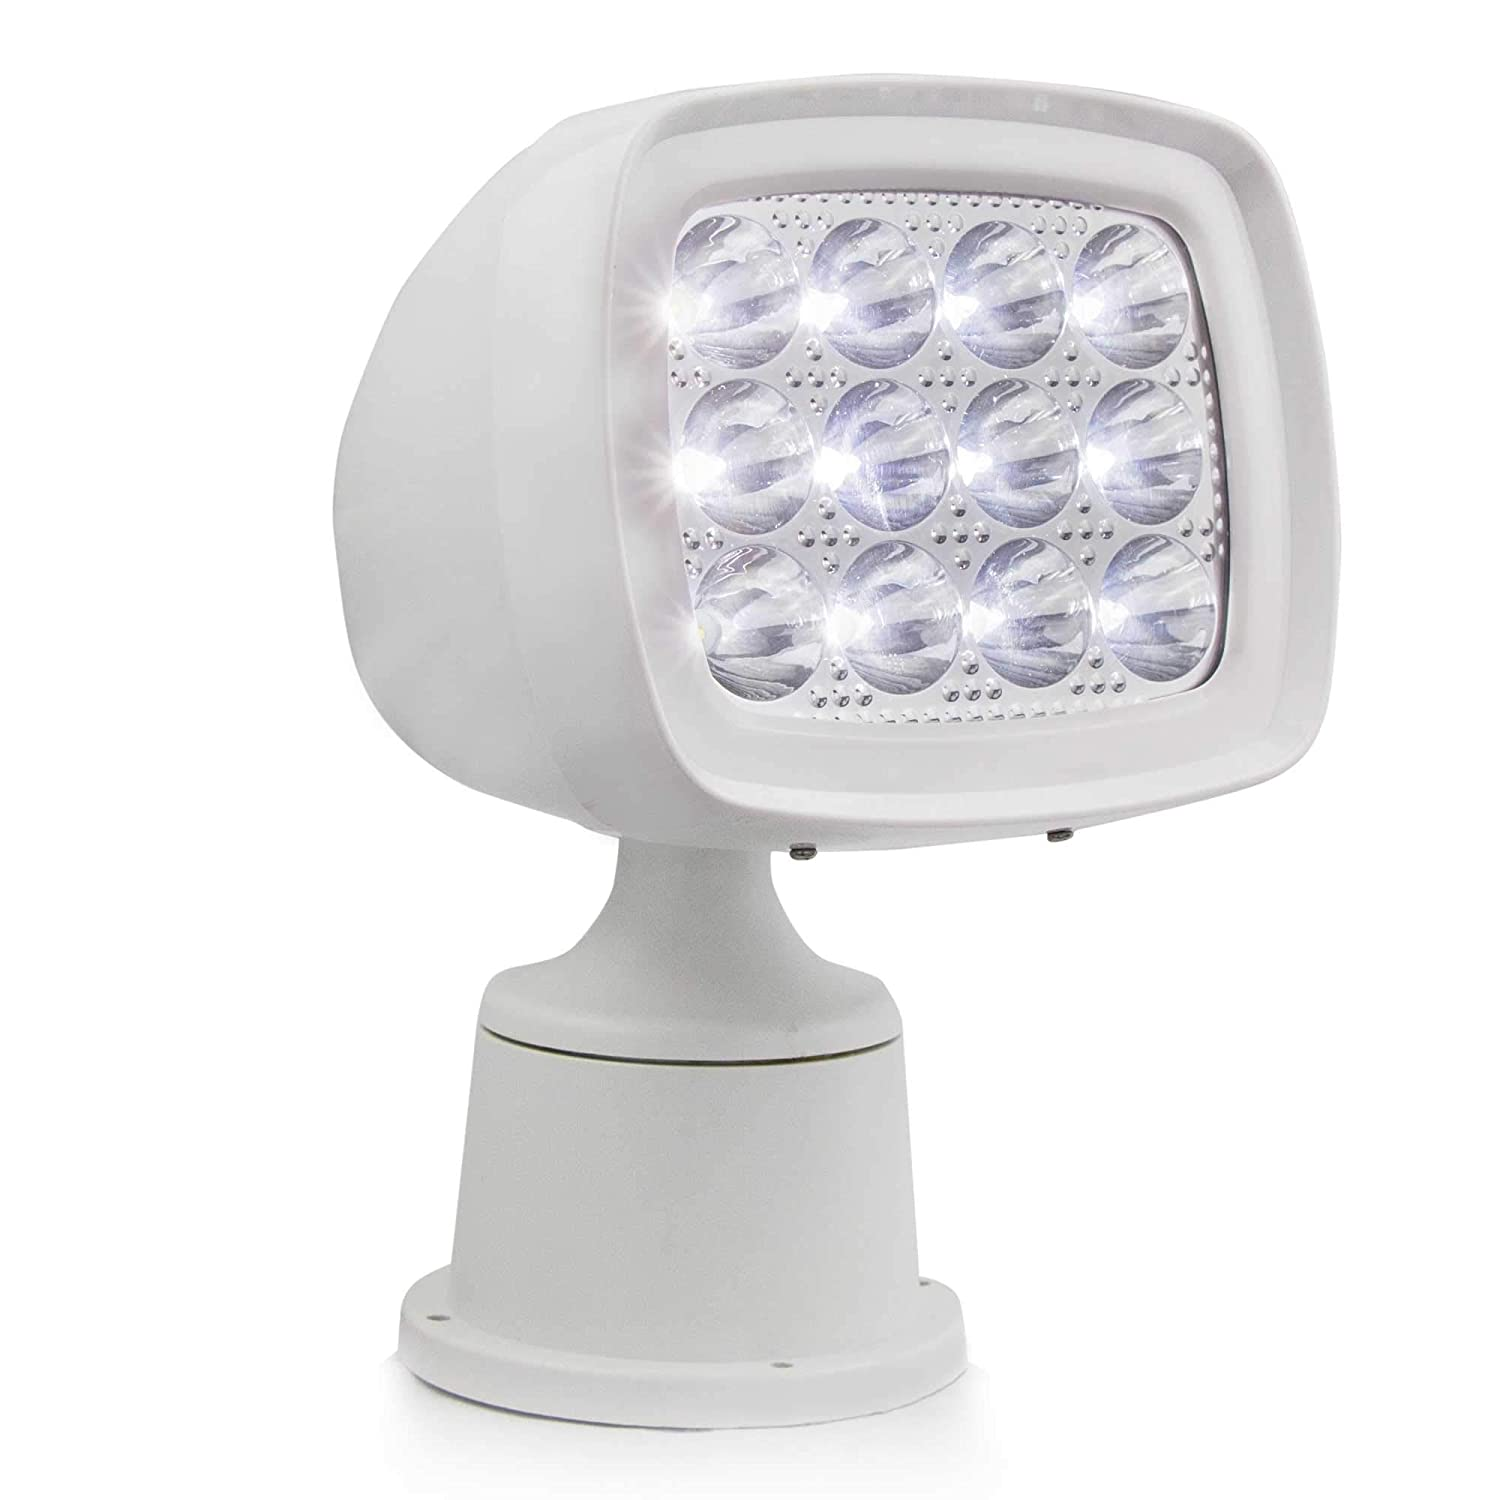 Five Oceans Wireless LED Remote Control Searchlight 12V FO-3913-M2 Pair